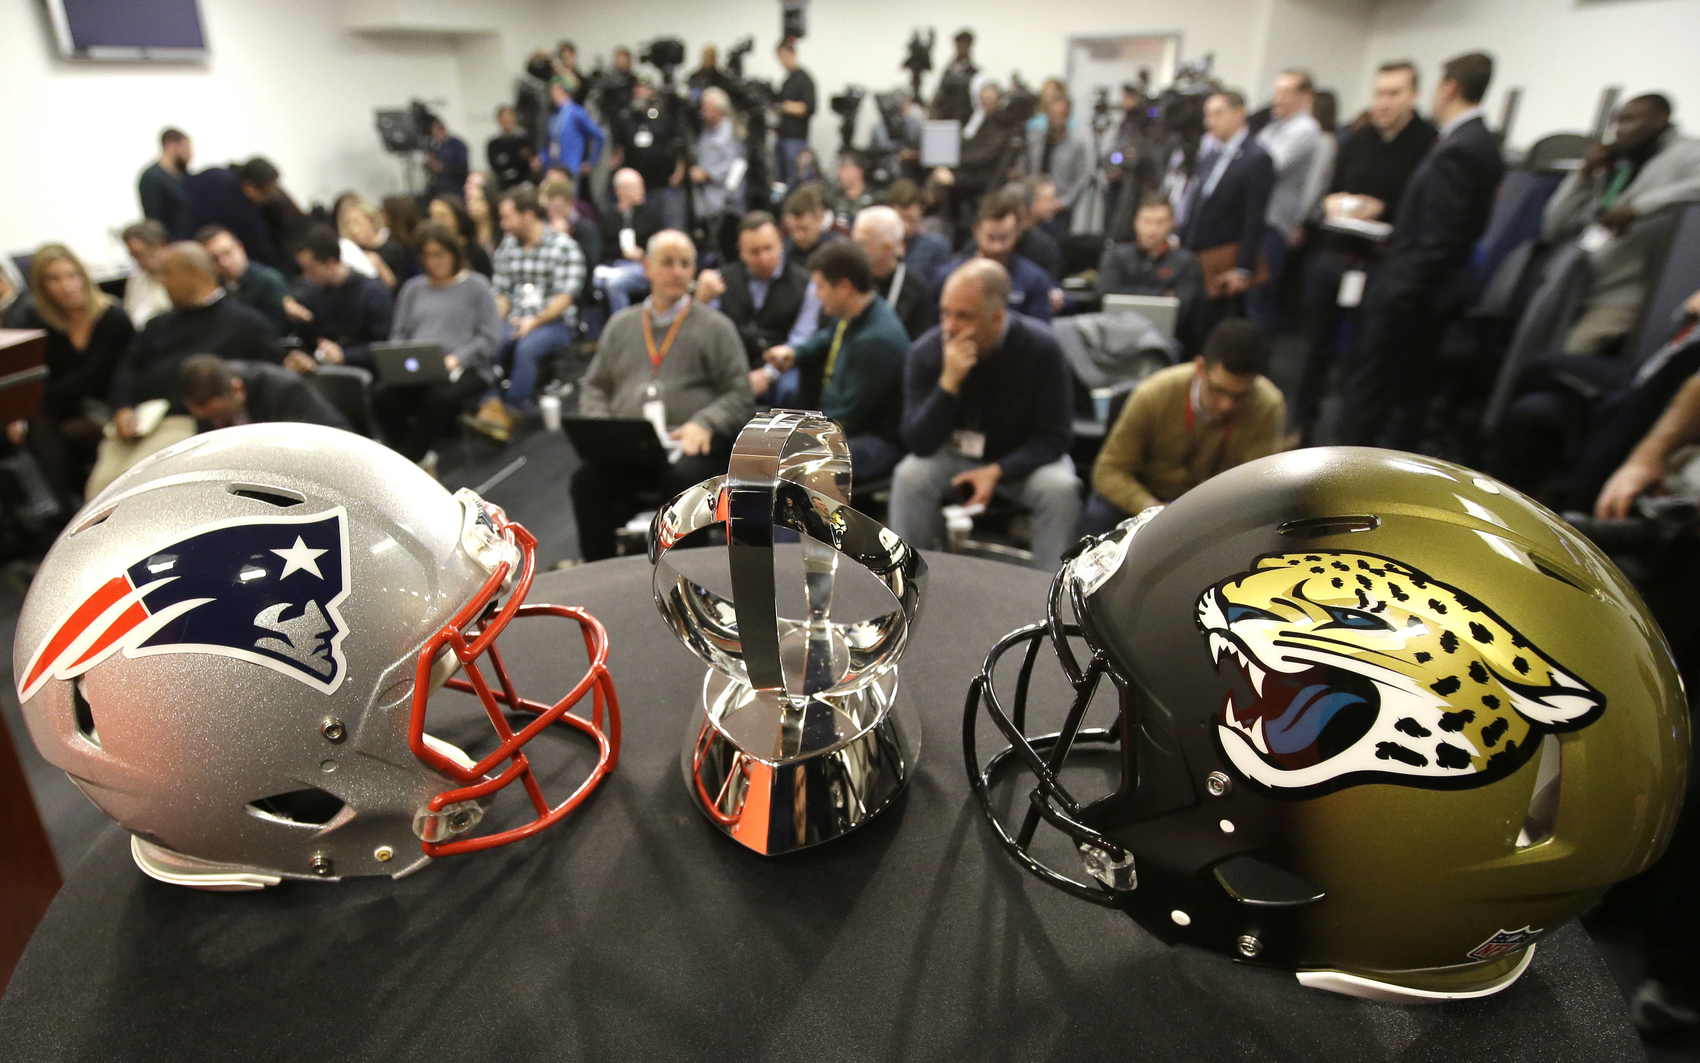 A New England Patriots helmet, left, a Lamar Hunt AFC Championship trophy, center, and a Jacksonville Jaguars helmet, right, are displayed on a podium in front of members of the media, behind, before the start of an NFL football news conference, Wednesday, Jan. 17, 2018, at Gillette Stadium, in Foxborough, Mass. The New England Patriots host the Jacksonville Jaguars in the AFC championship on Sunday (AP Photo/Steven Senne)